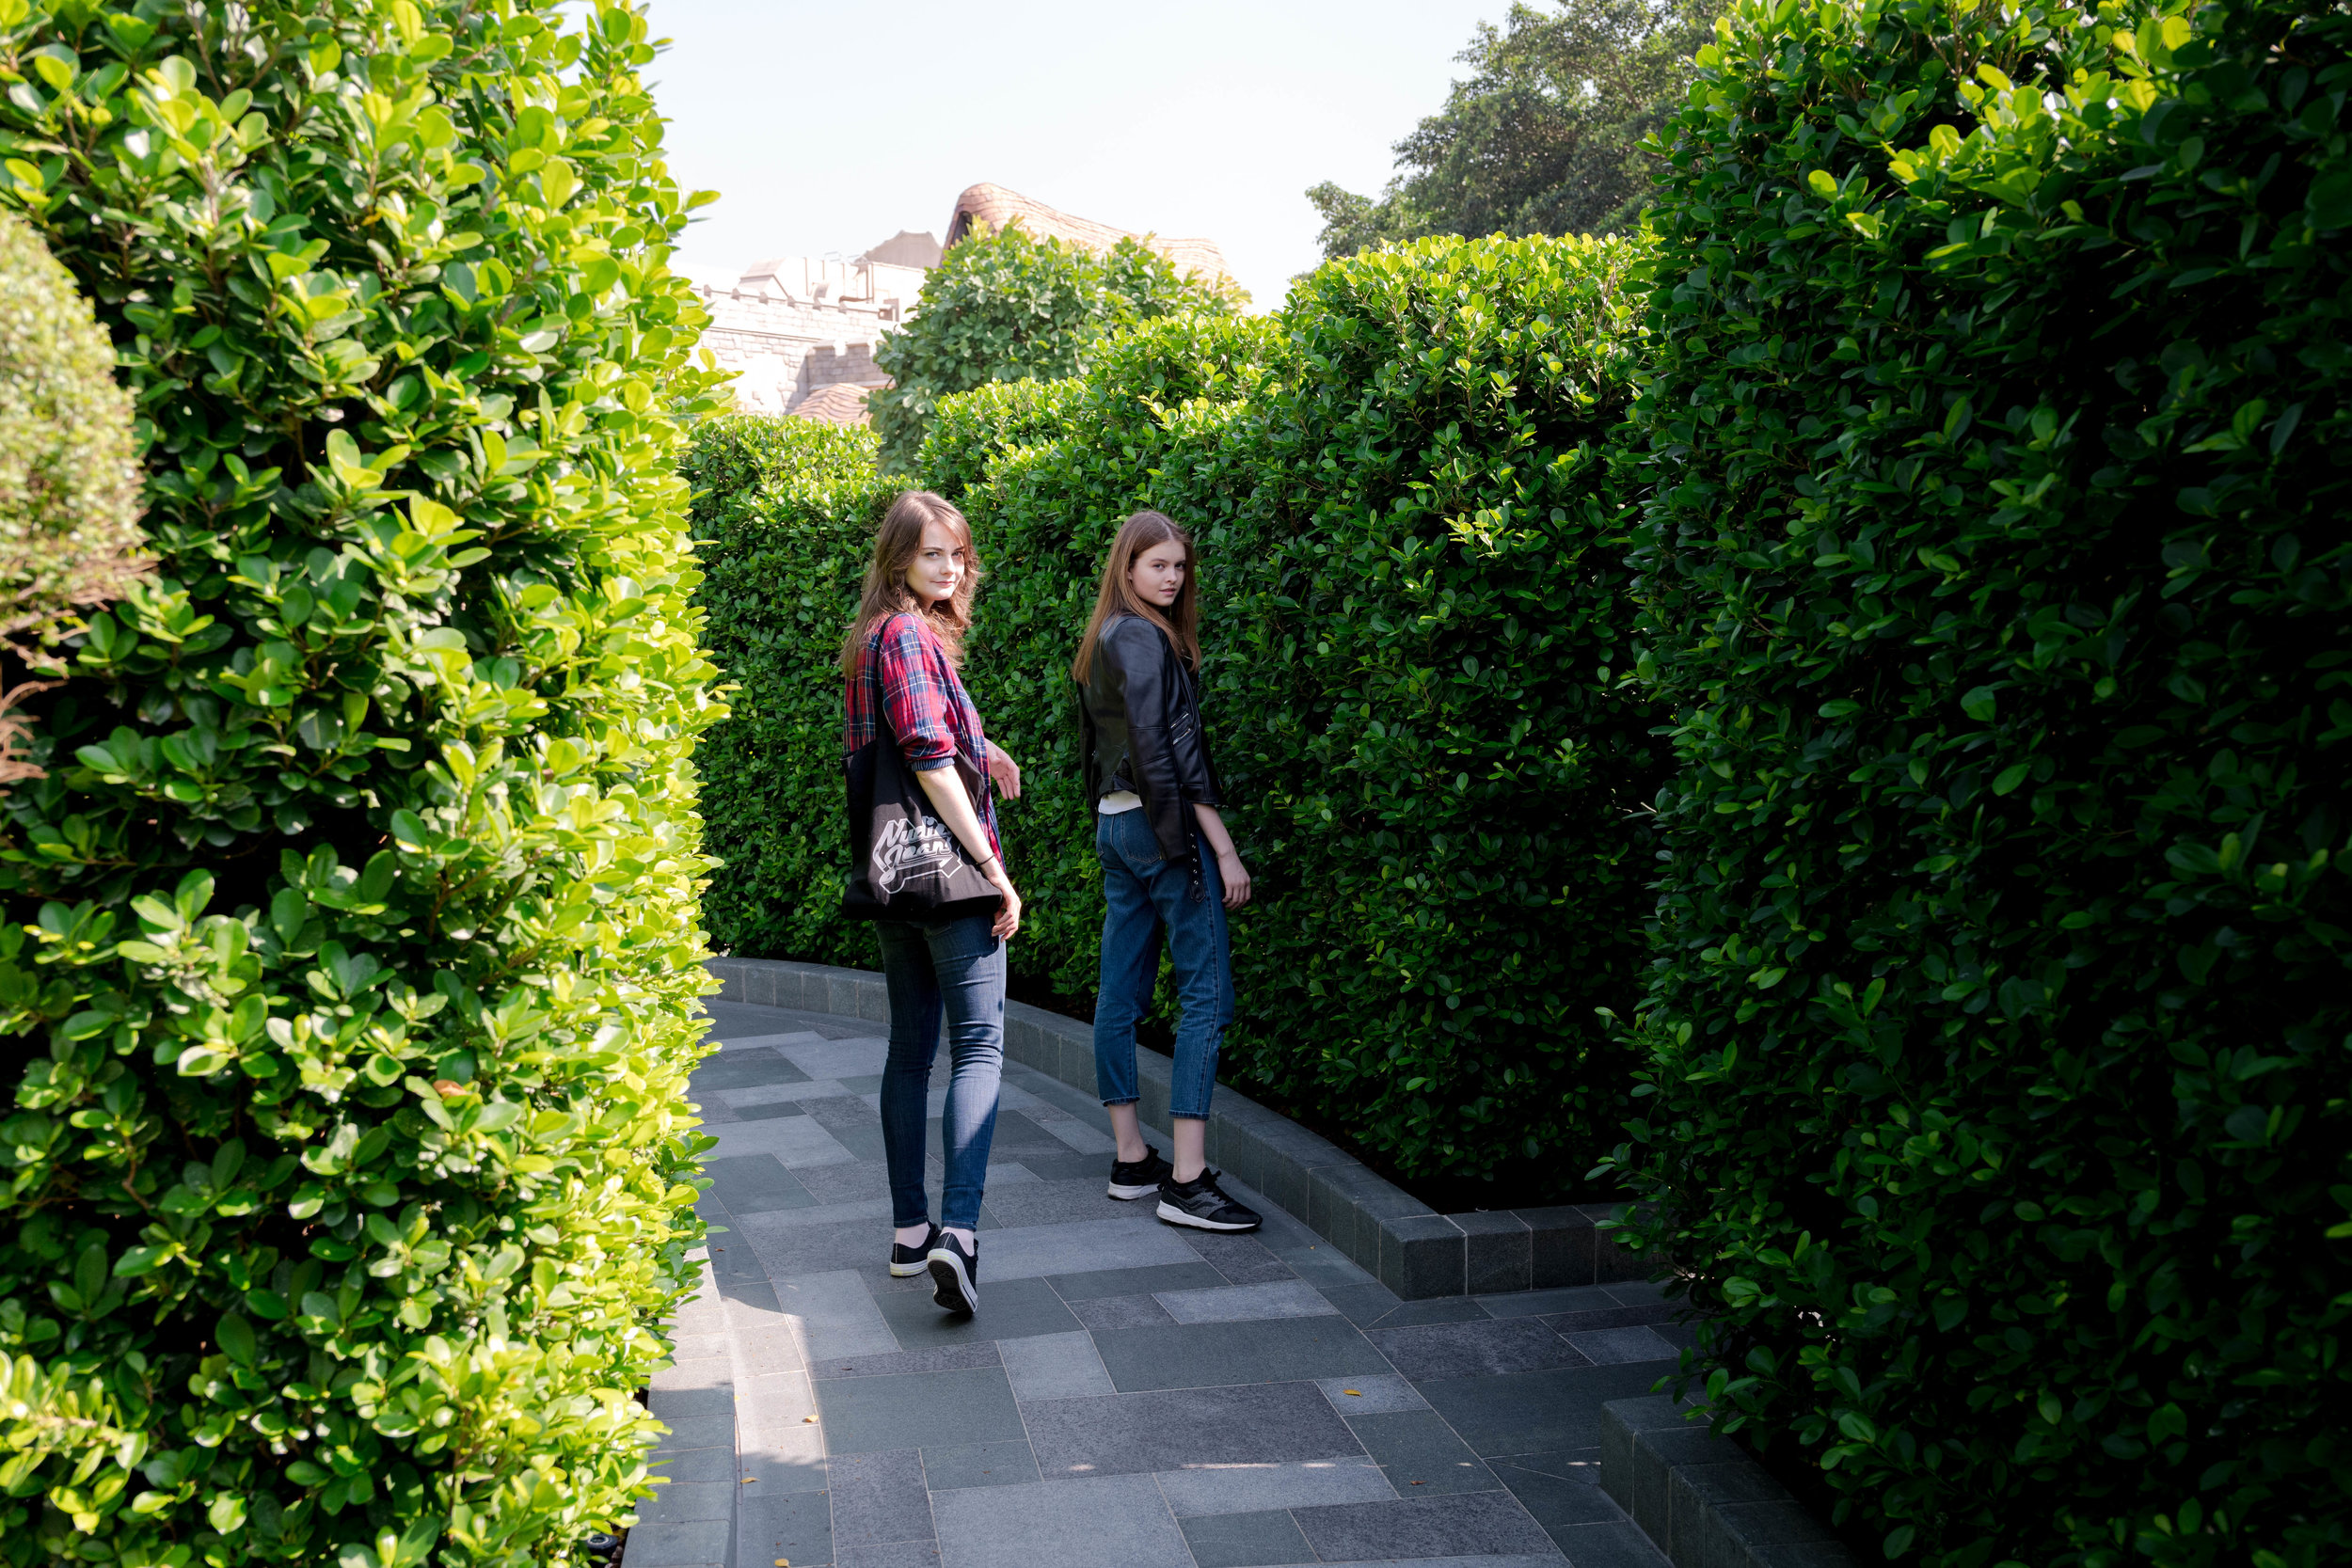 The autofocus completely missed focus on either Anna or Lessy's face in this image. The autofocus selected focus on the contrasty leaves of the closer hedges. I had to manipulate the camera's position to focus on the leaves closer to Anna and Lessy, in order to reasonably get focus.